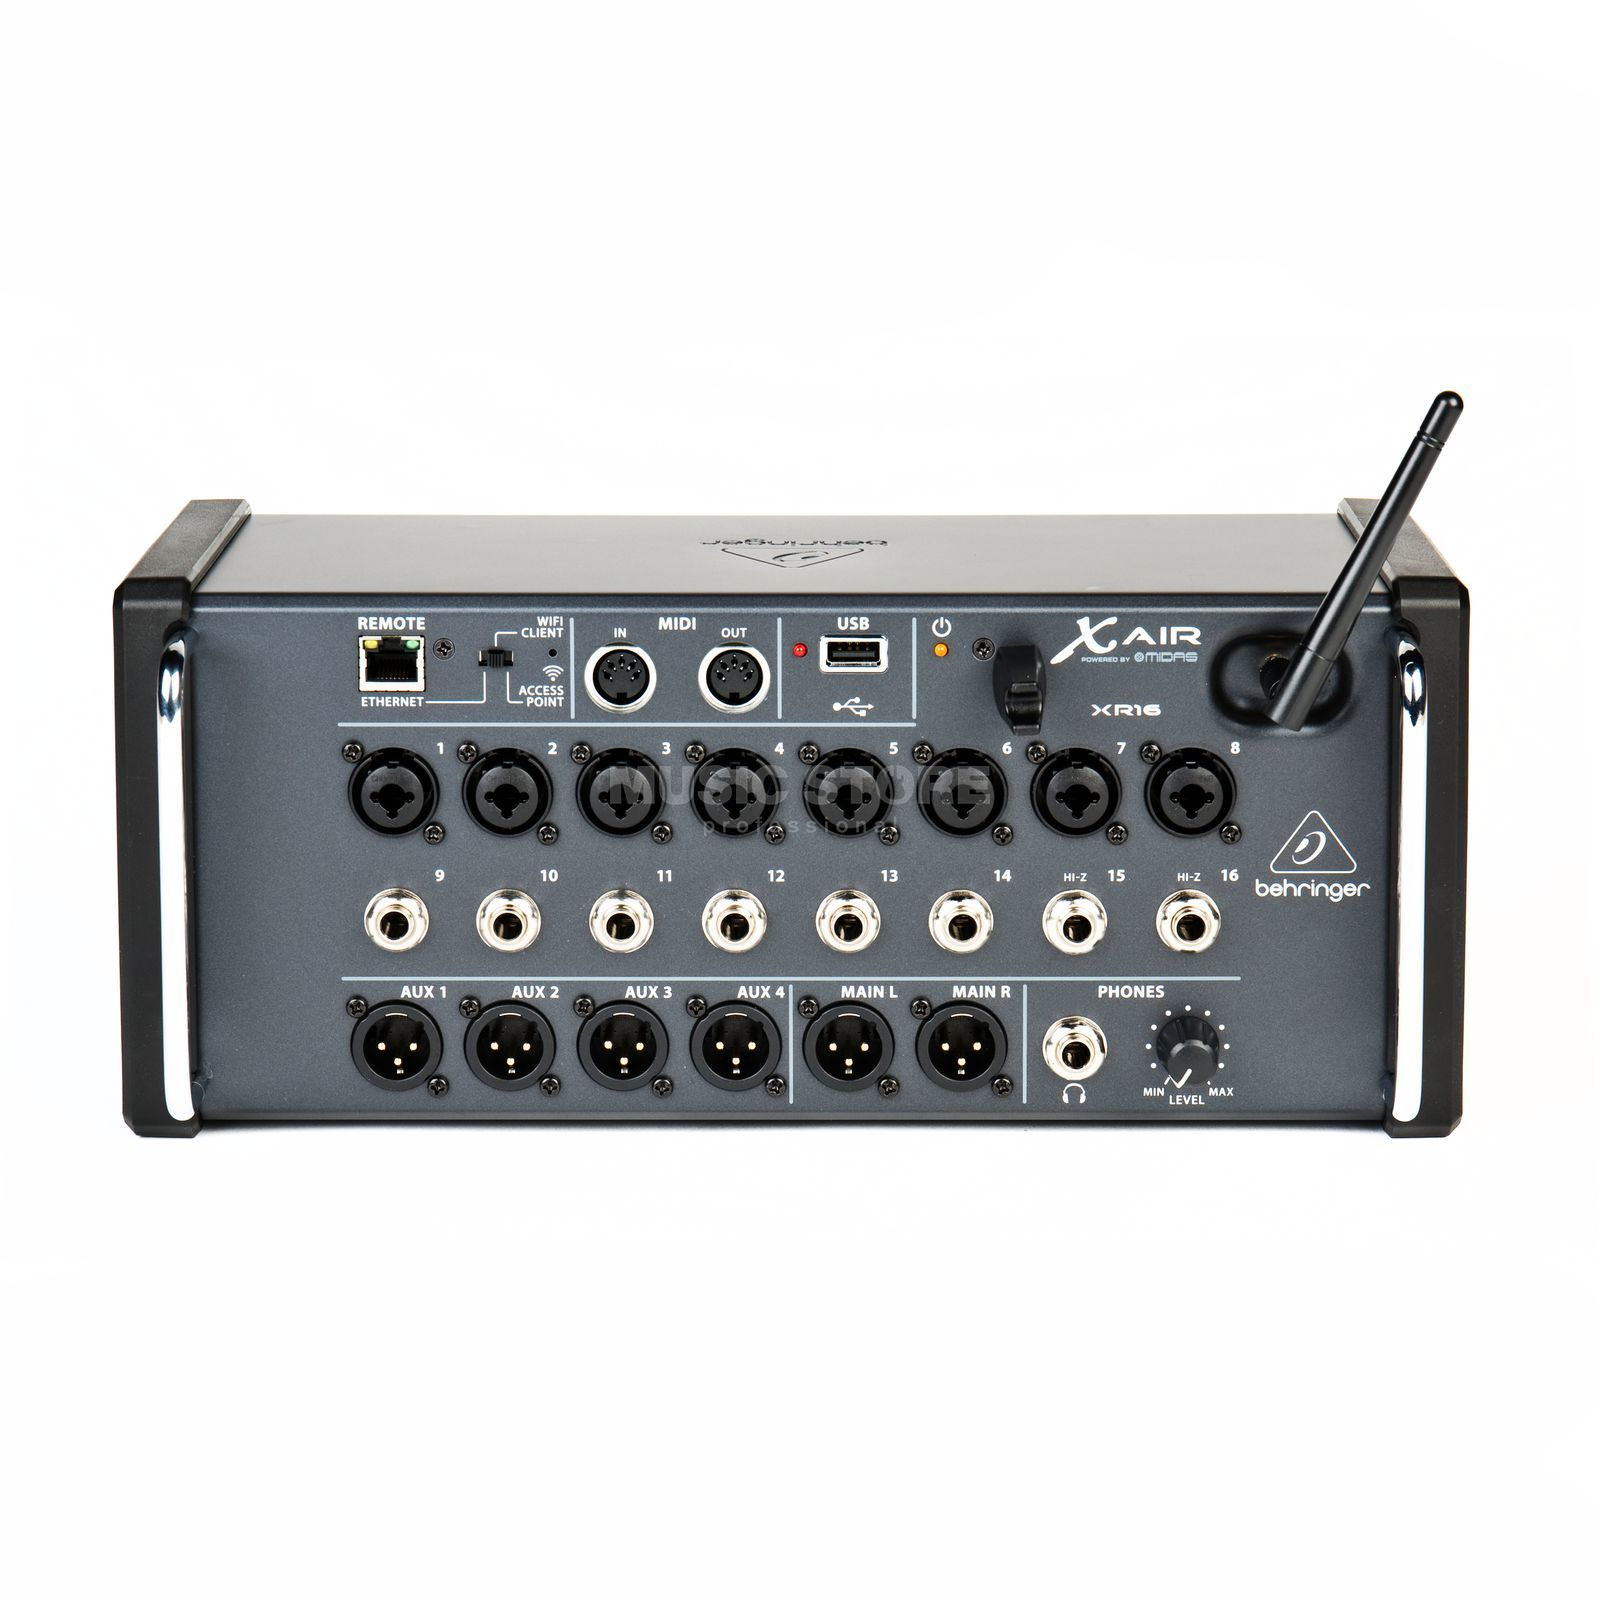 Behringer XR16 X-Air Stagebox mit IPad Steuerung Product Image